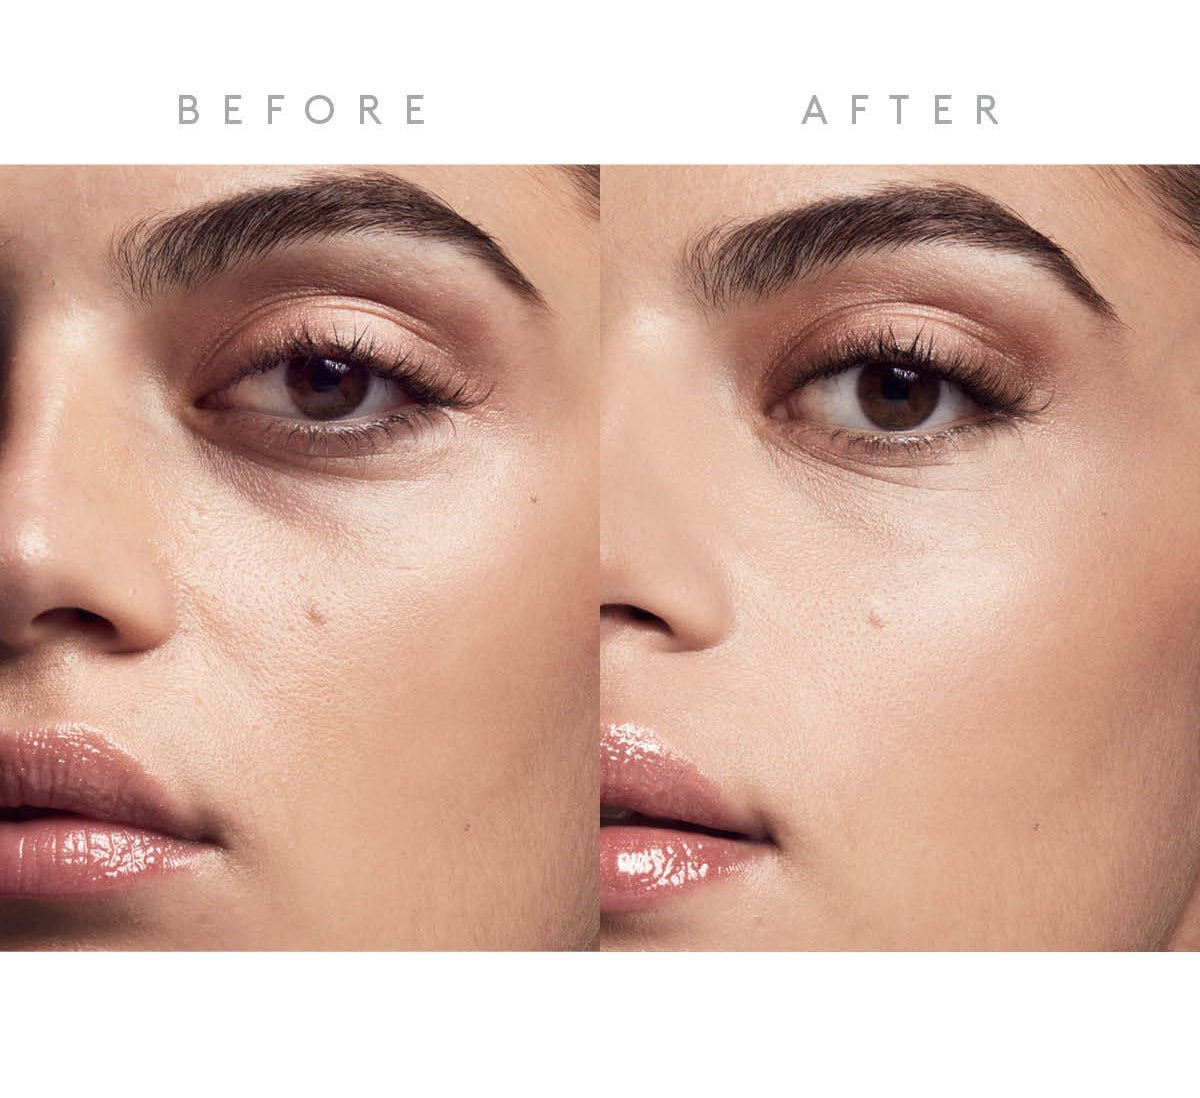 a before and after of a model with visible dark circles under eyes, then smoother even-toned undereyes after using concealer